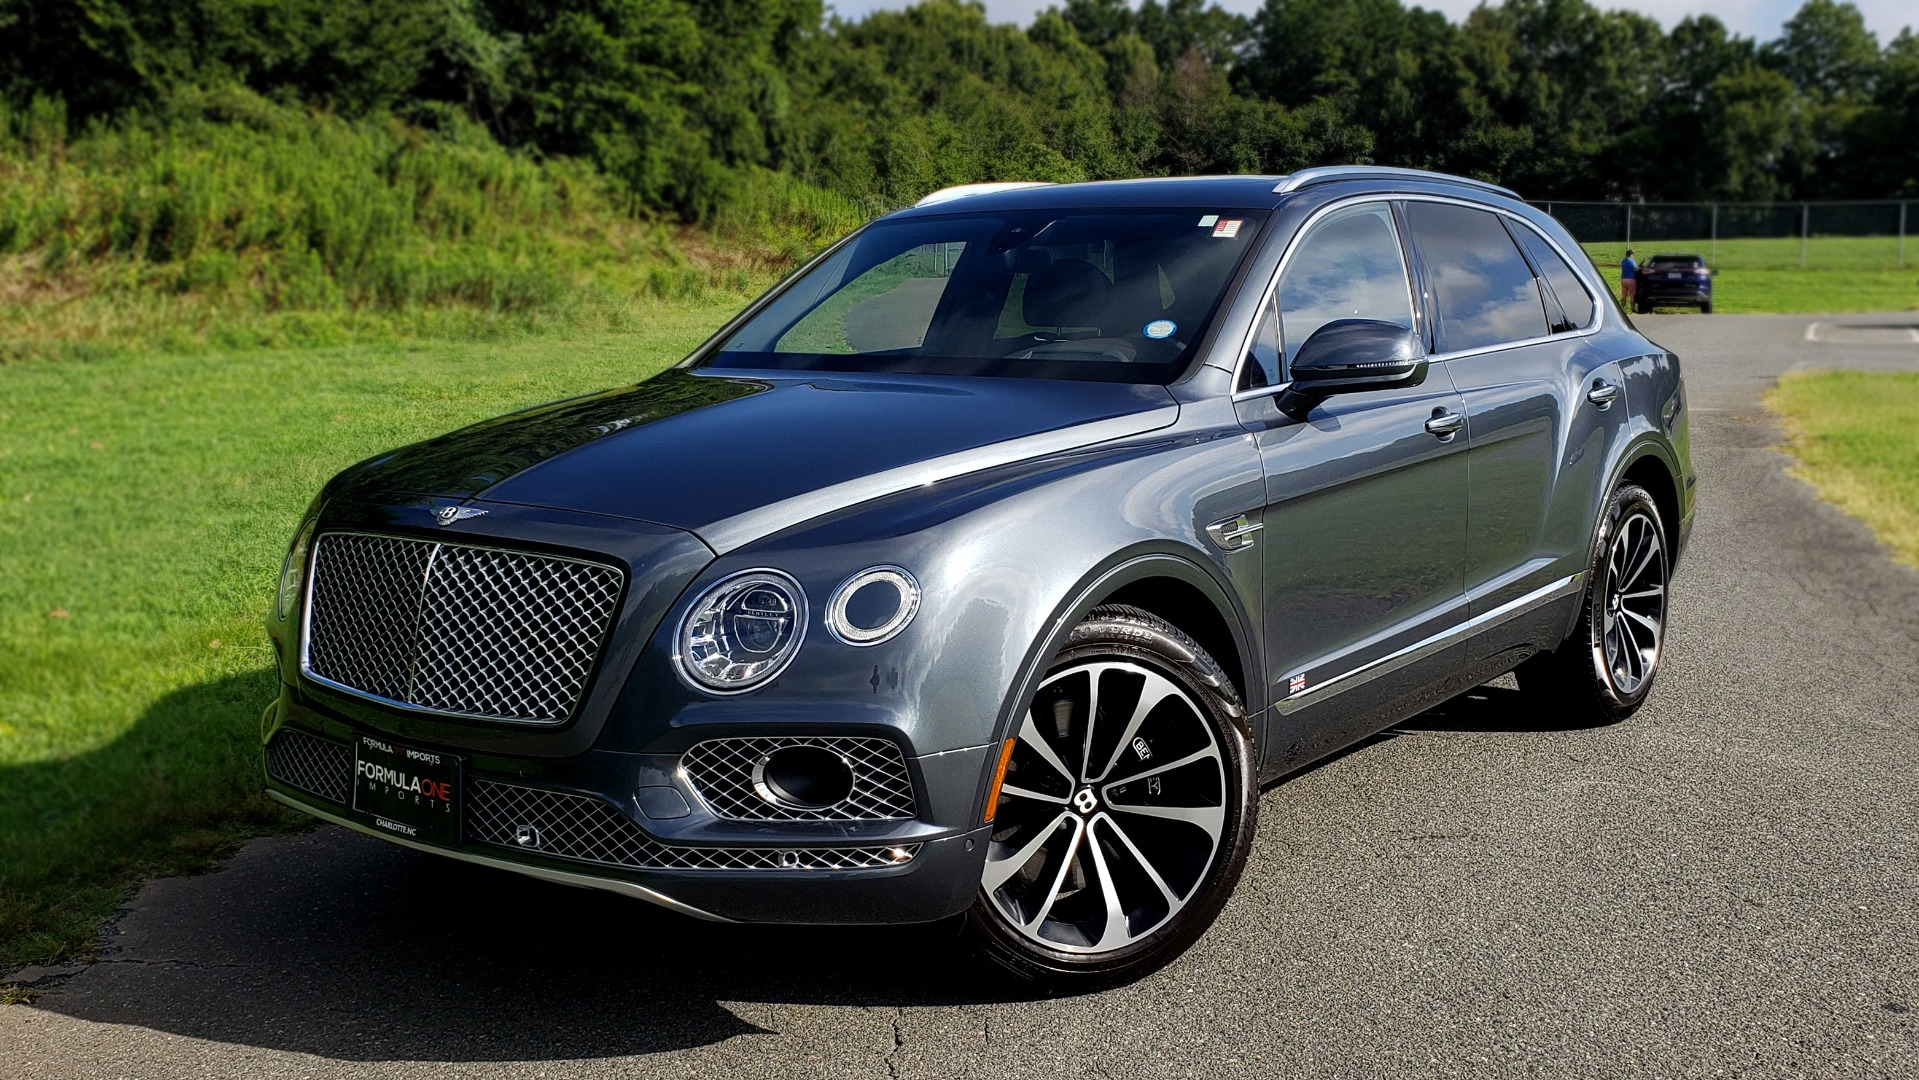 Used 2017 Bentley BENTAYGA W12 600HP / NAV / HUD / PANO-ROOF / VENT SEATS / REARVIEW for sale $144,995 at Formula Imports in Charlotte NC 28227 1